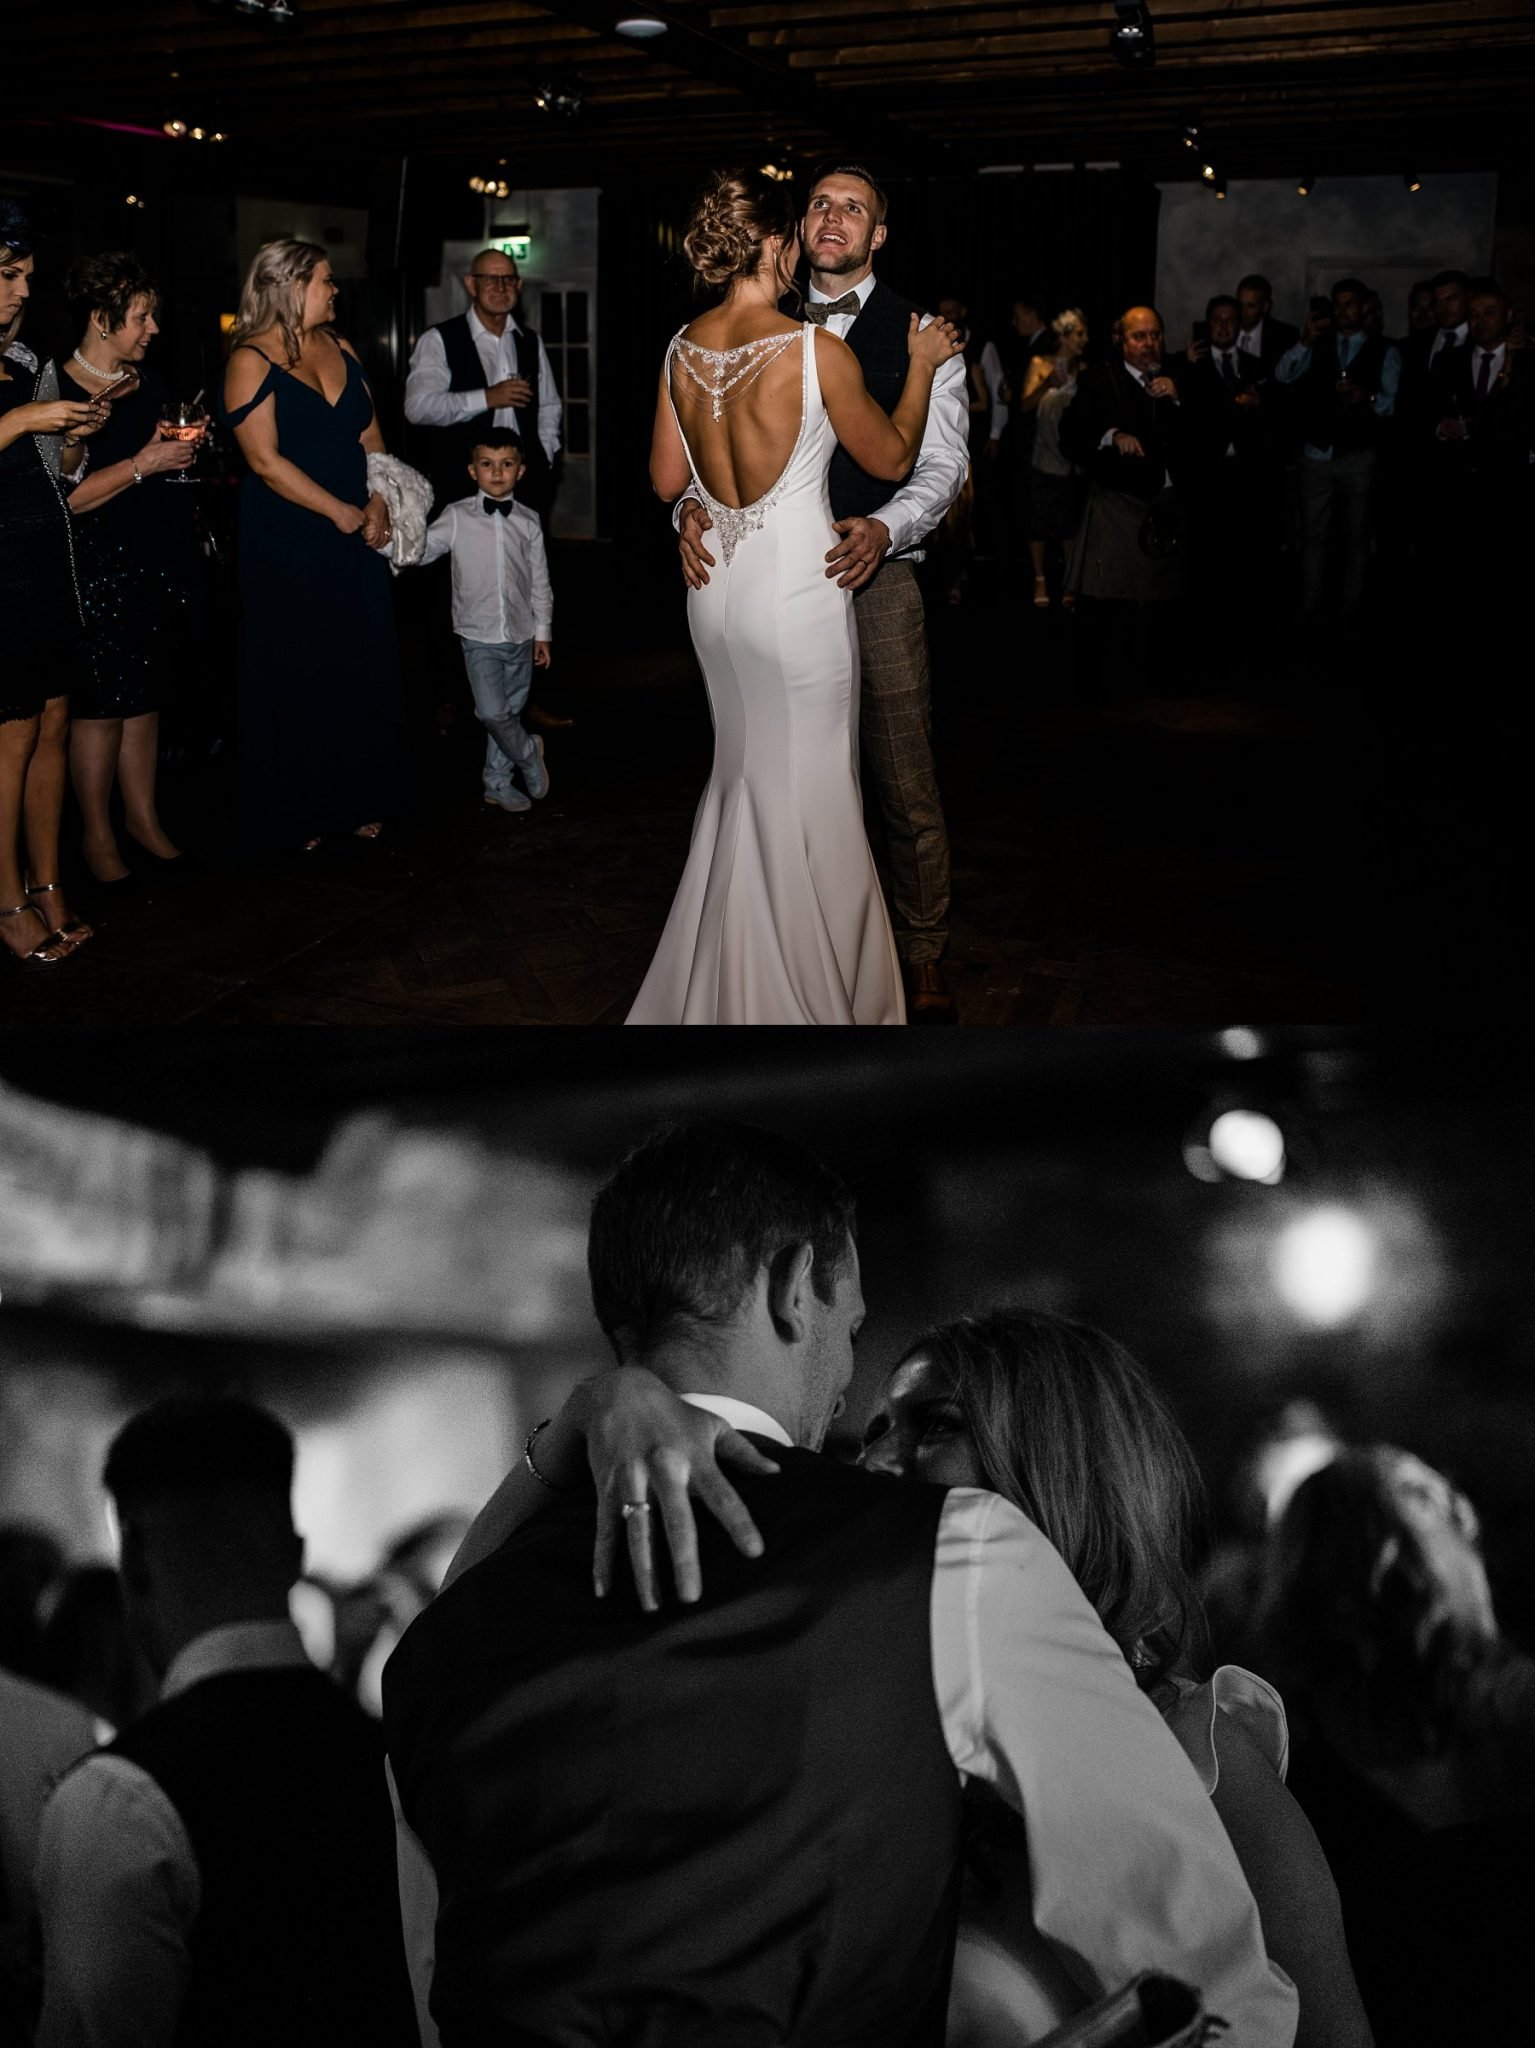 first dance speeches Le petite Chateau wedding - Newcastle Wedding Photographer